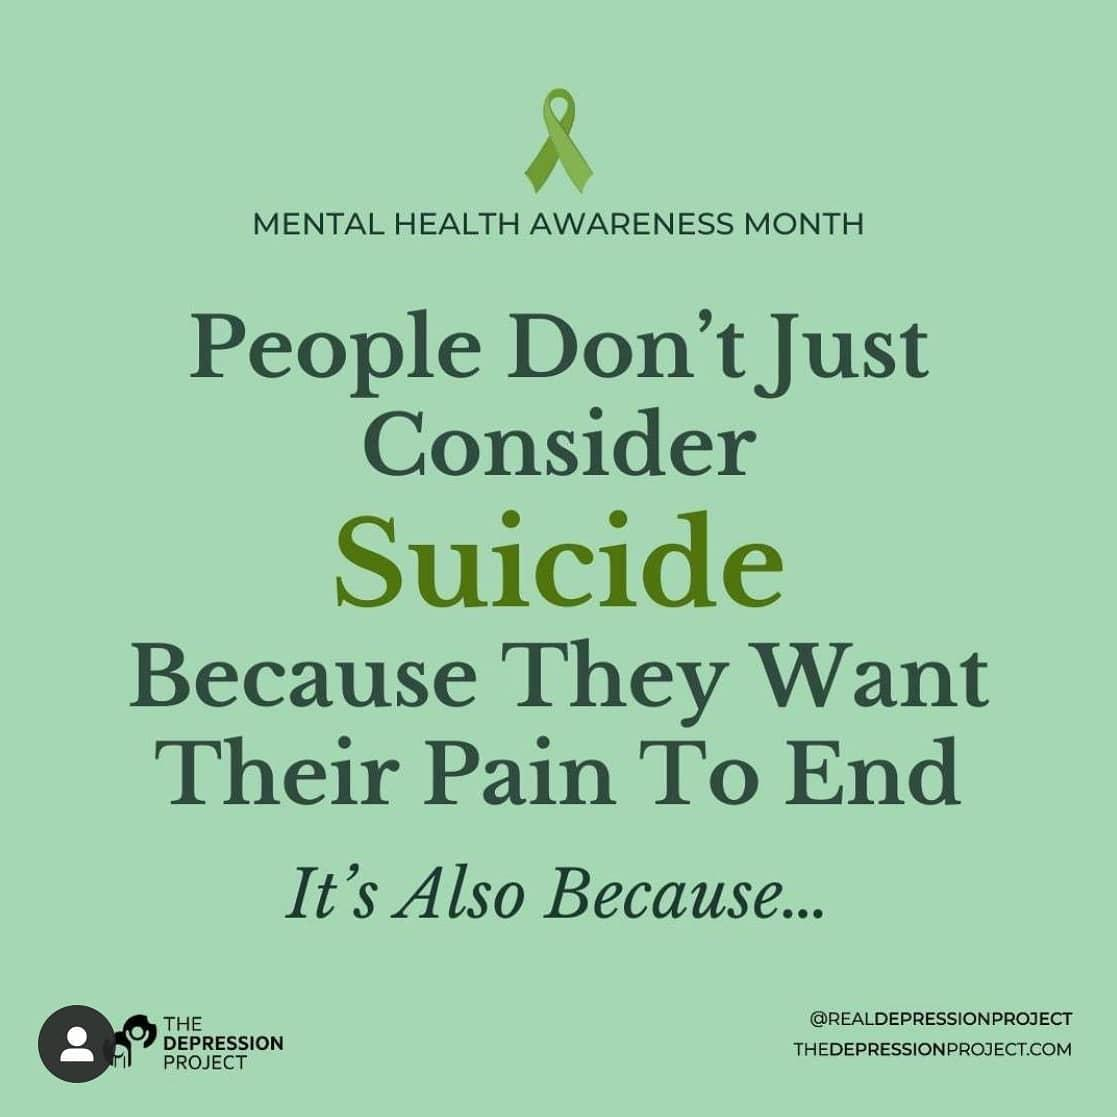 #MayDay #MentalHealthMatters #SuicideAwareness #SaturdayThoughts